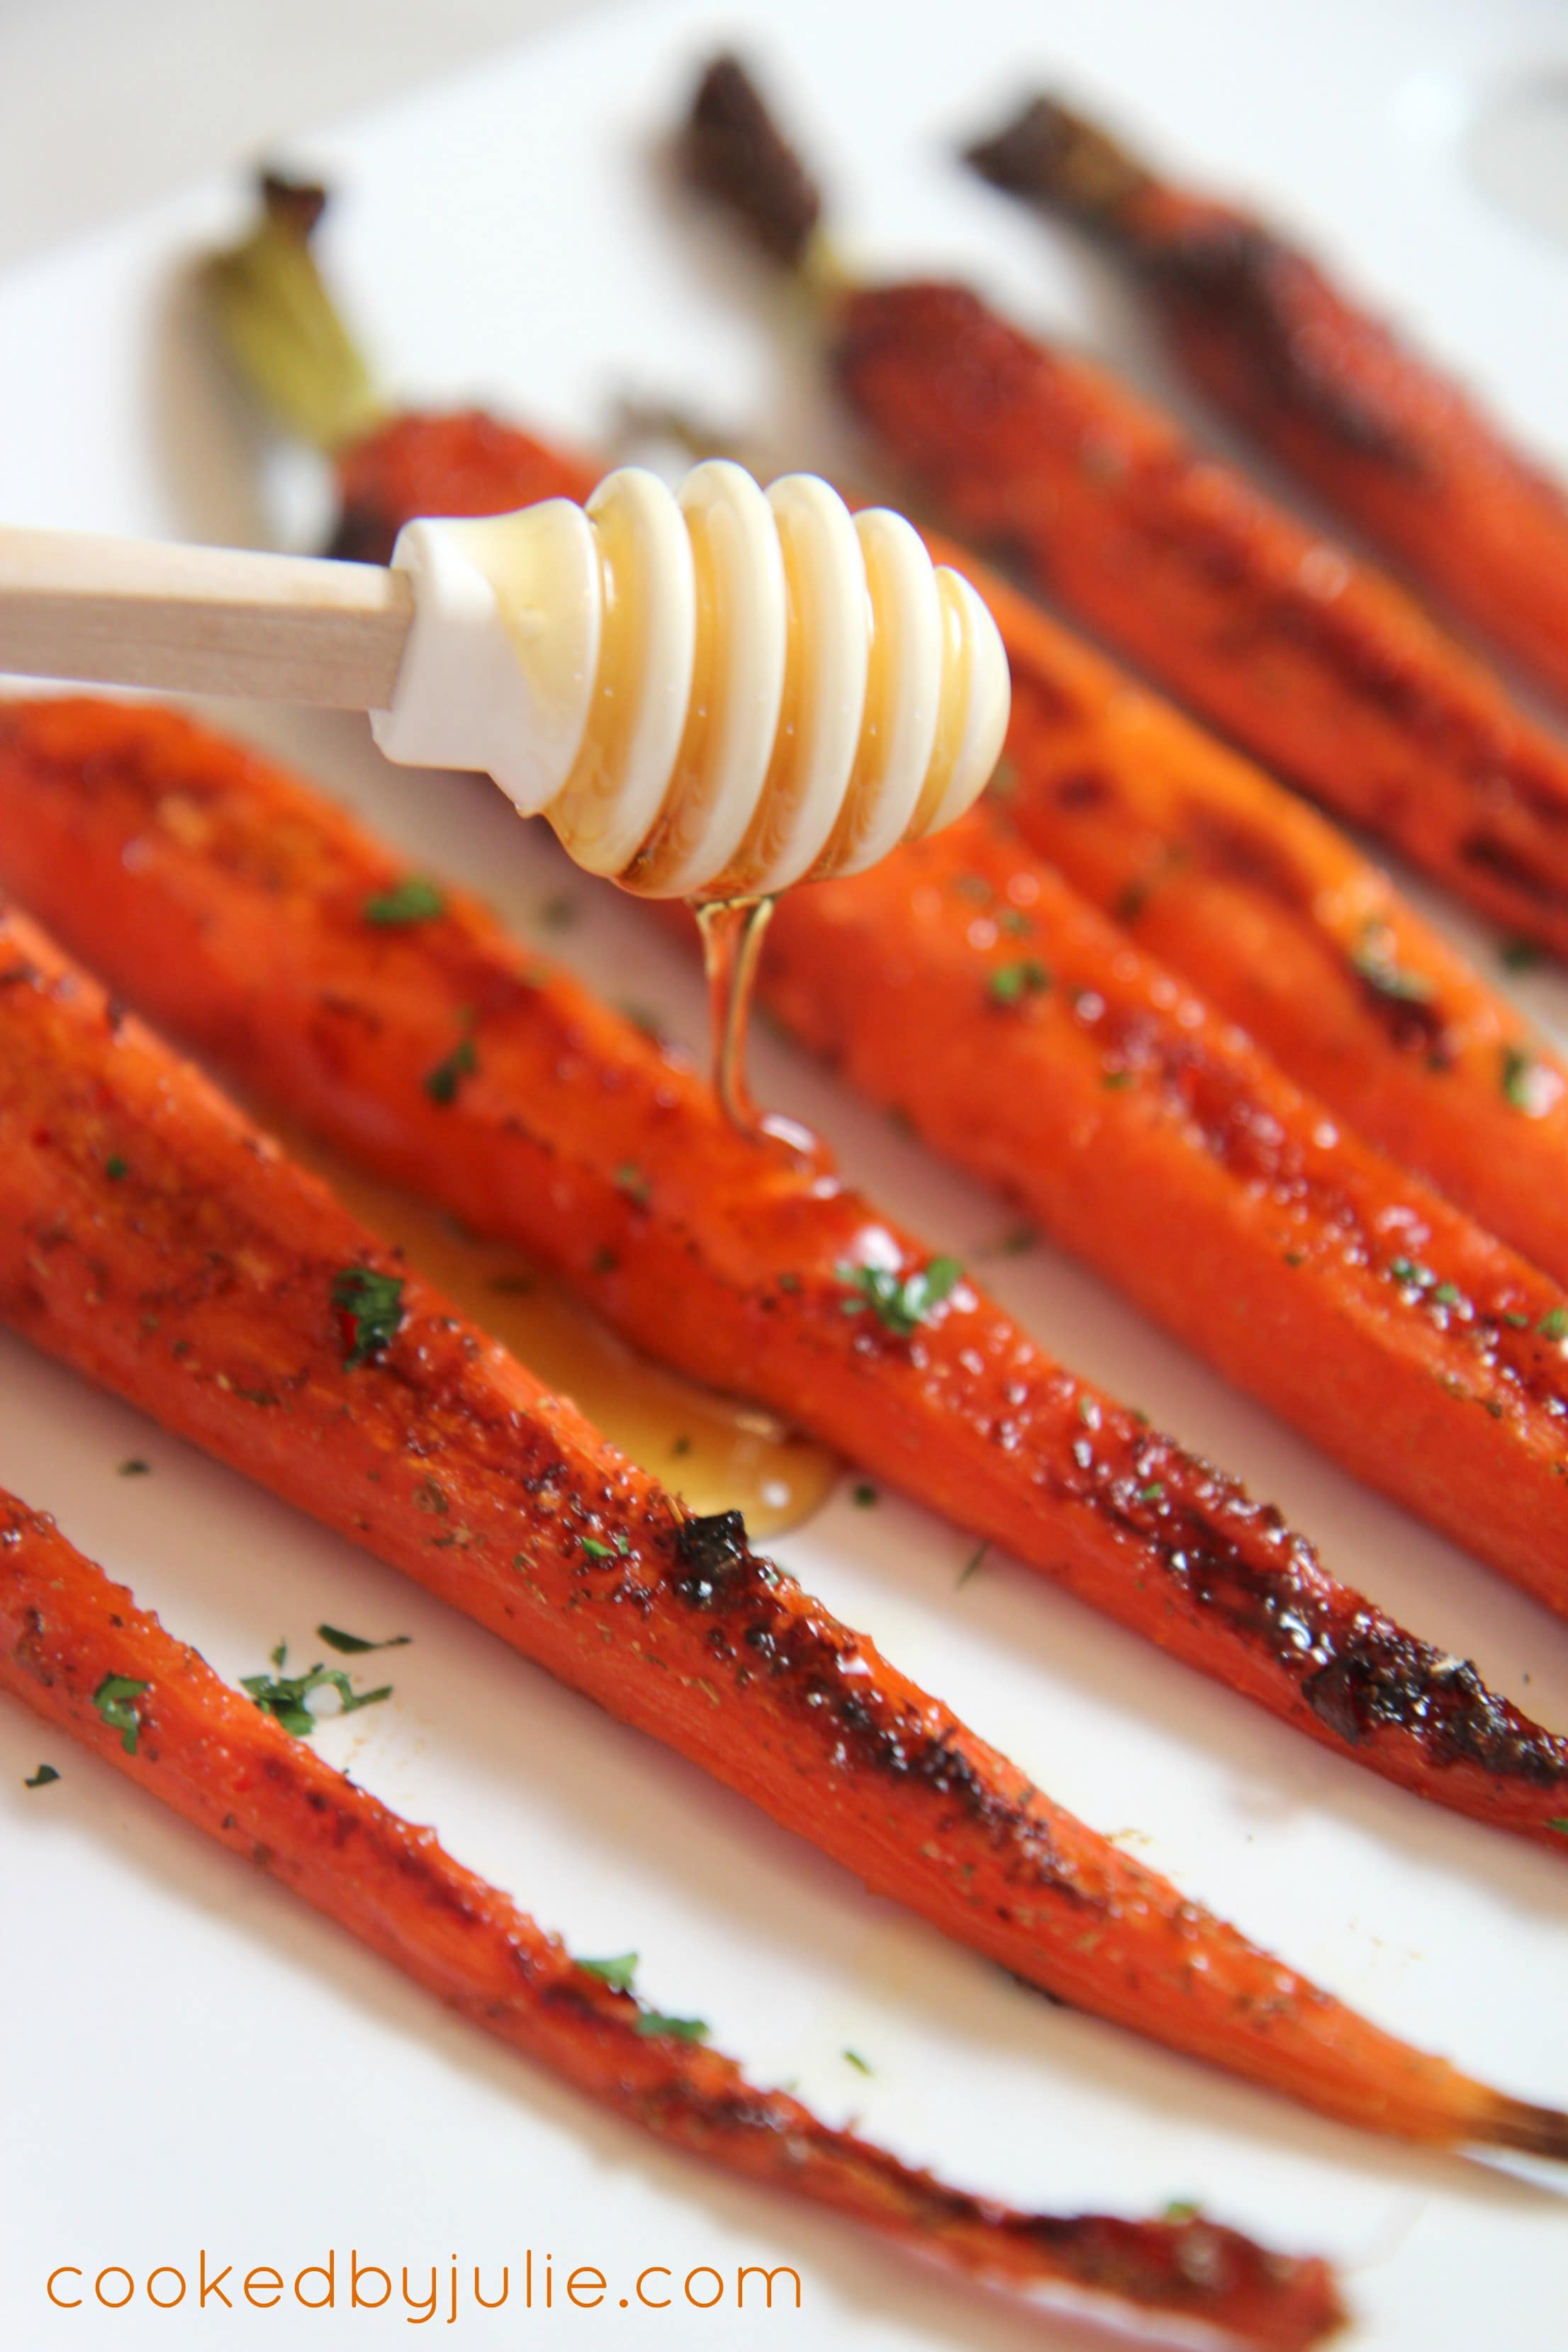 honey glazed garlic roasted carrots make a simple holiday side dish that's ready in minutes